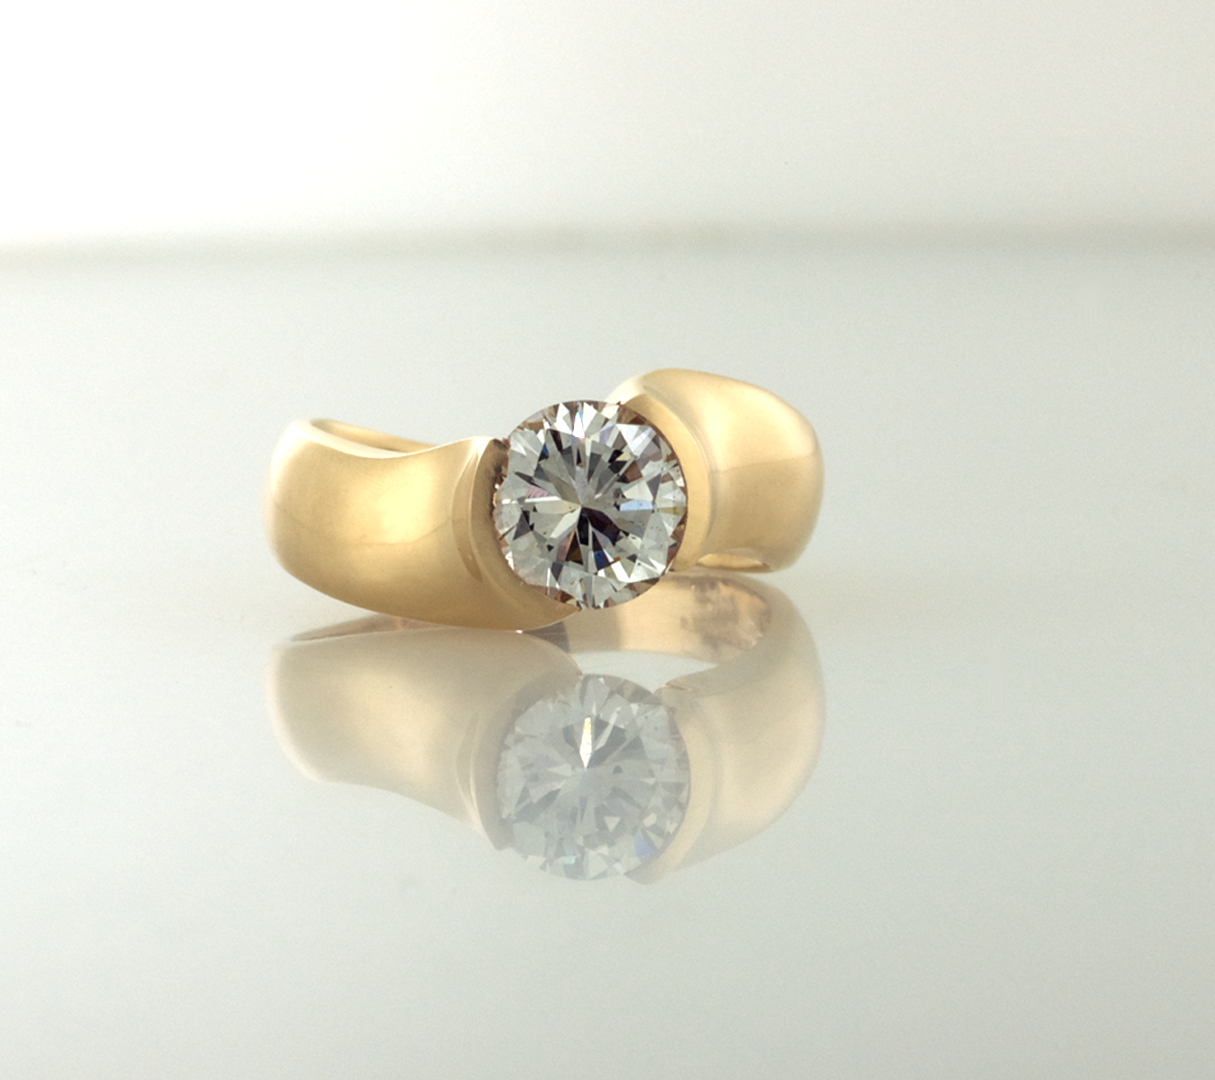 Diamonds and gold solitare contemporary ring